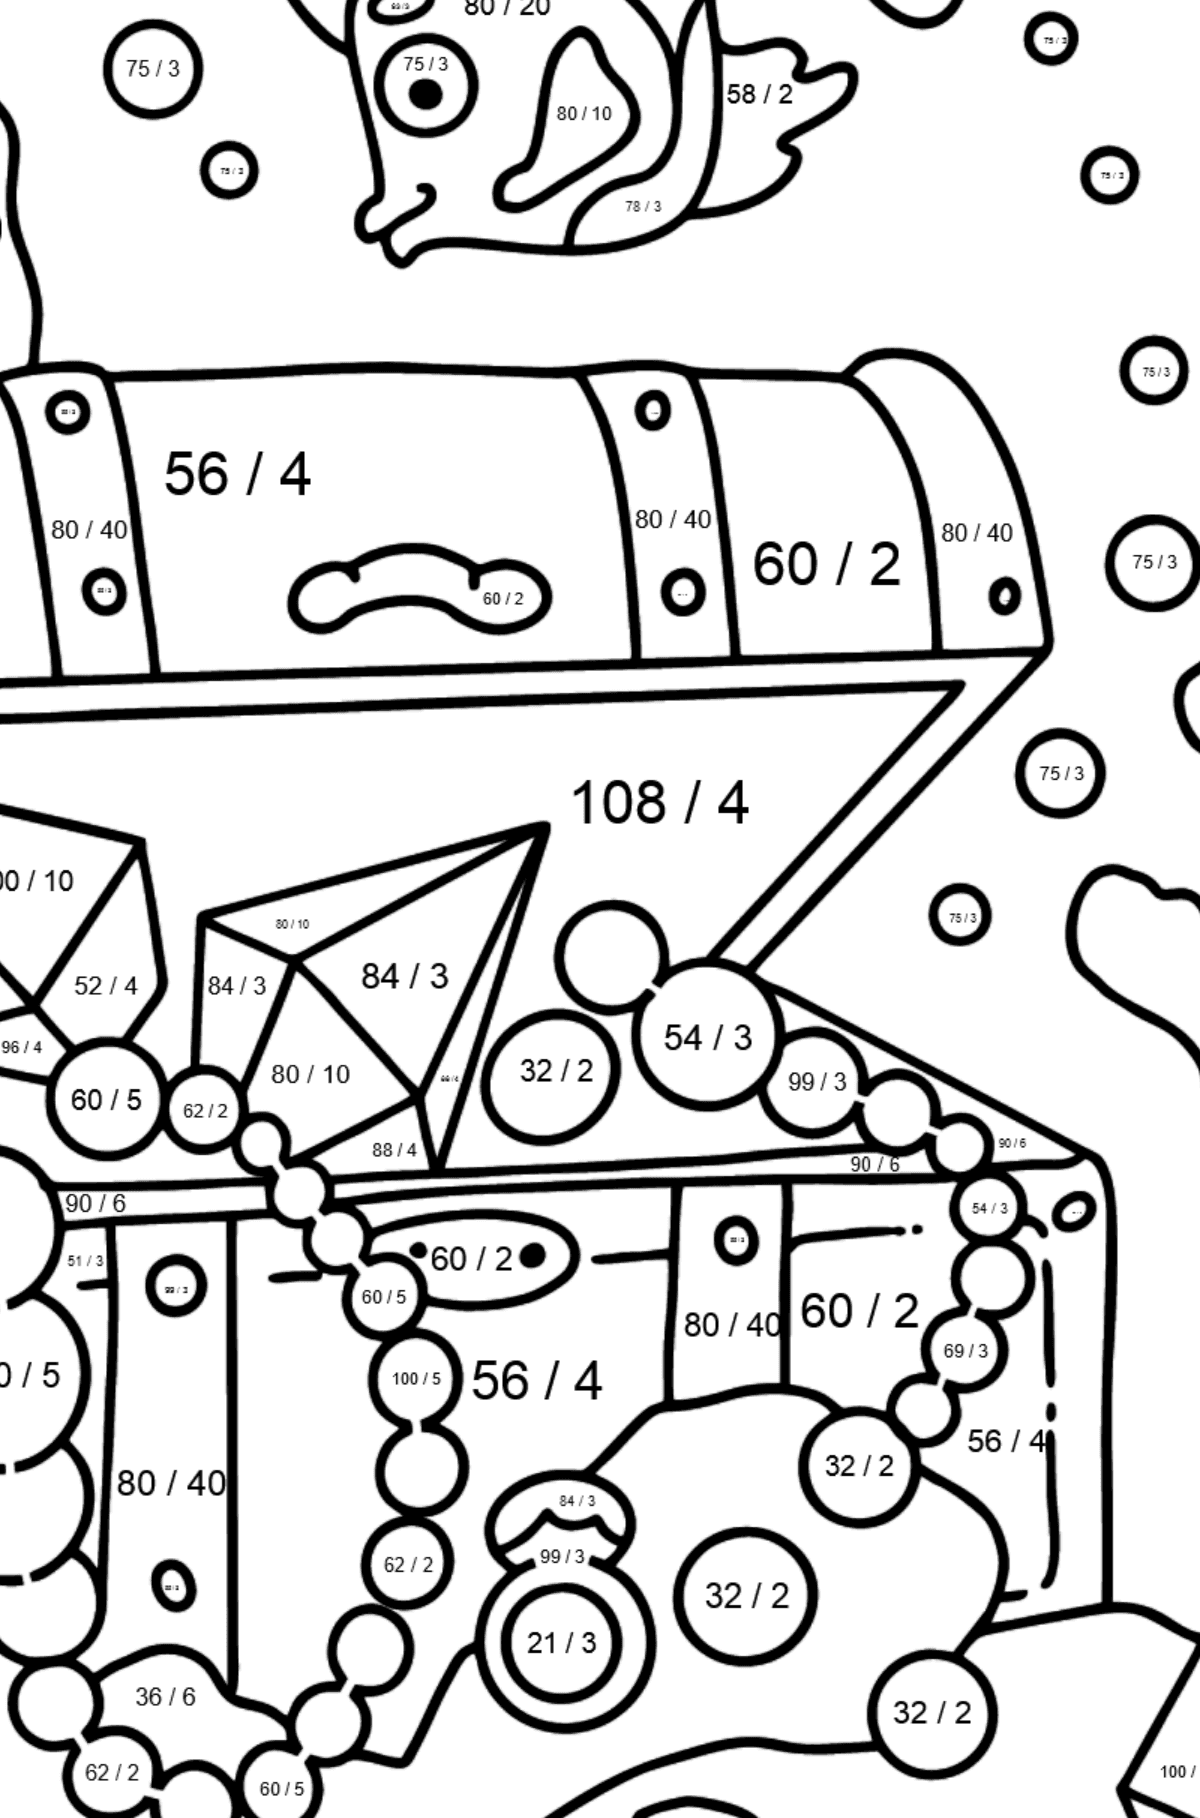 Coloring Page - A Fish is Taking a Peek at a Treasure - Math Coloring - Division for Kids